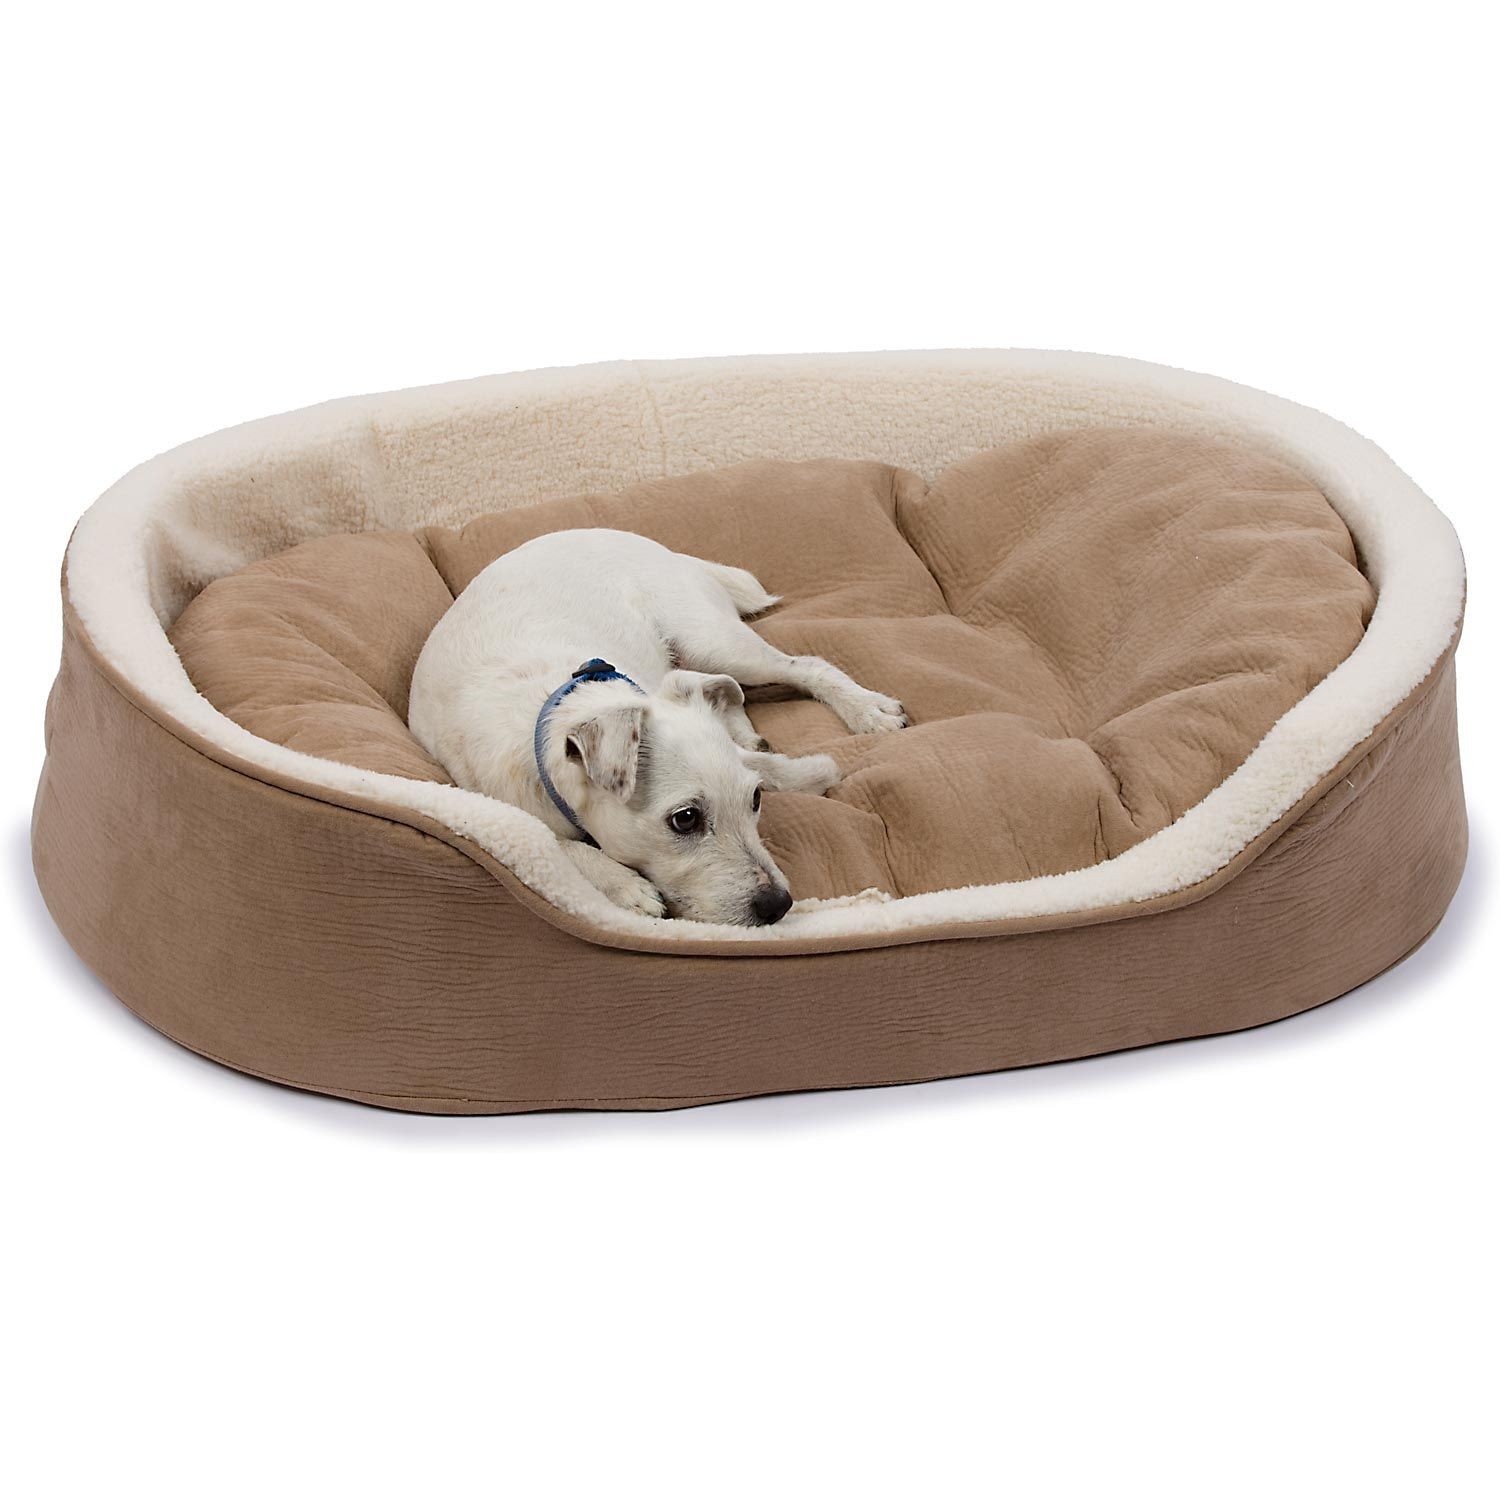 Petco Oval Tan and Cream Lounger Dog Bed. This bed is so